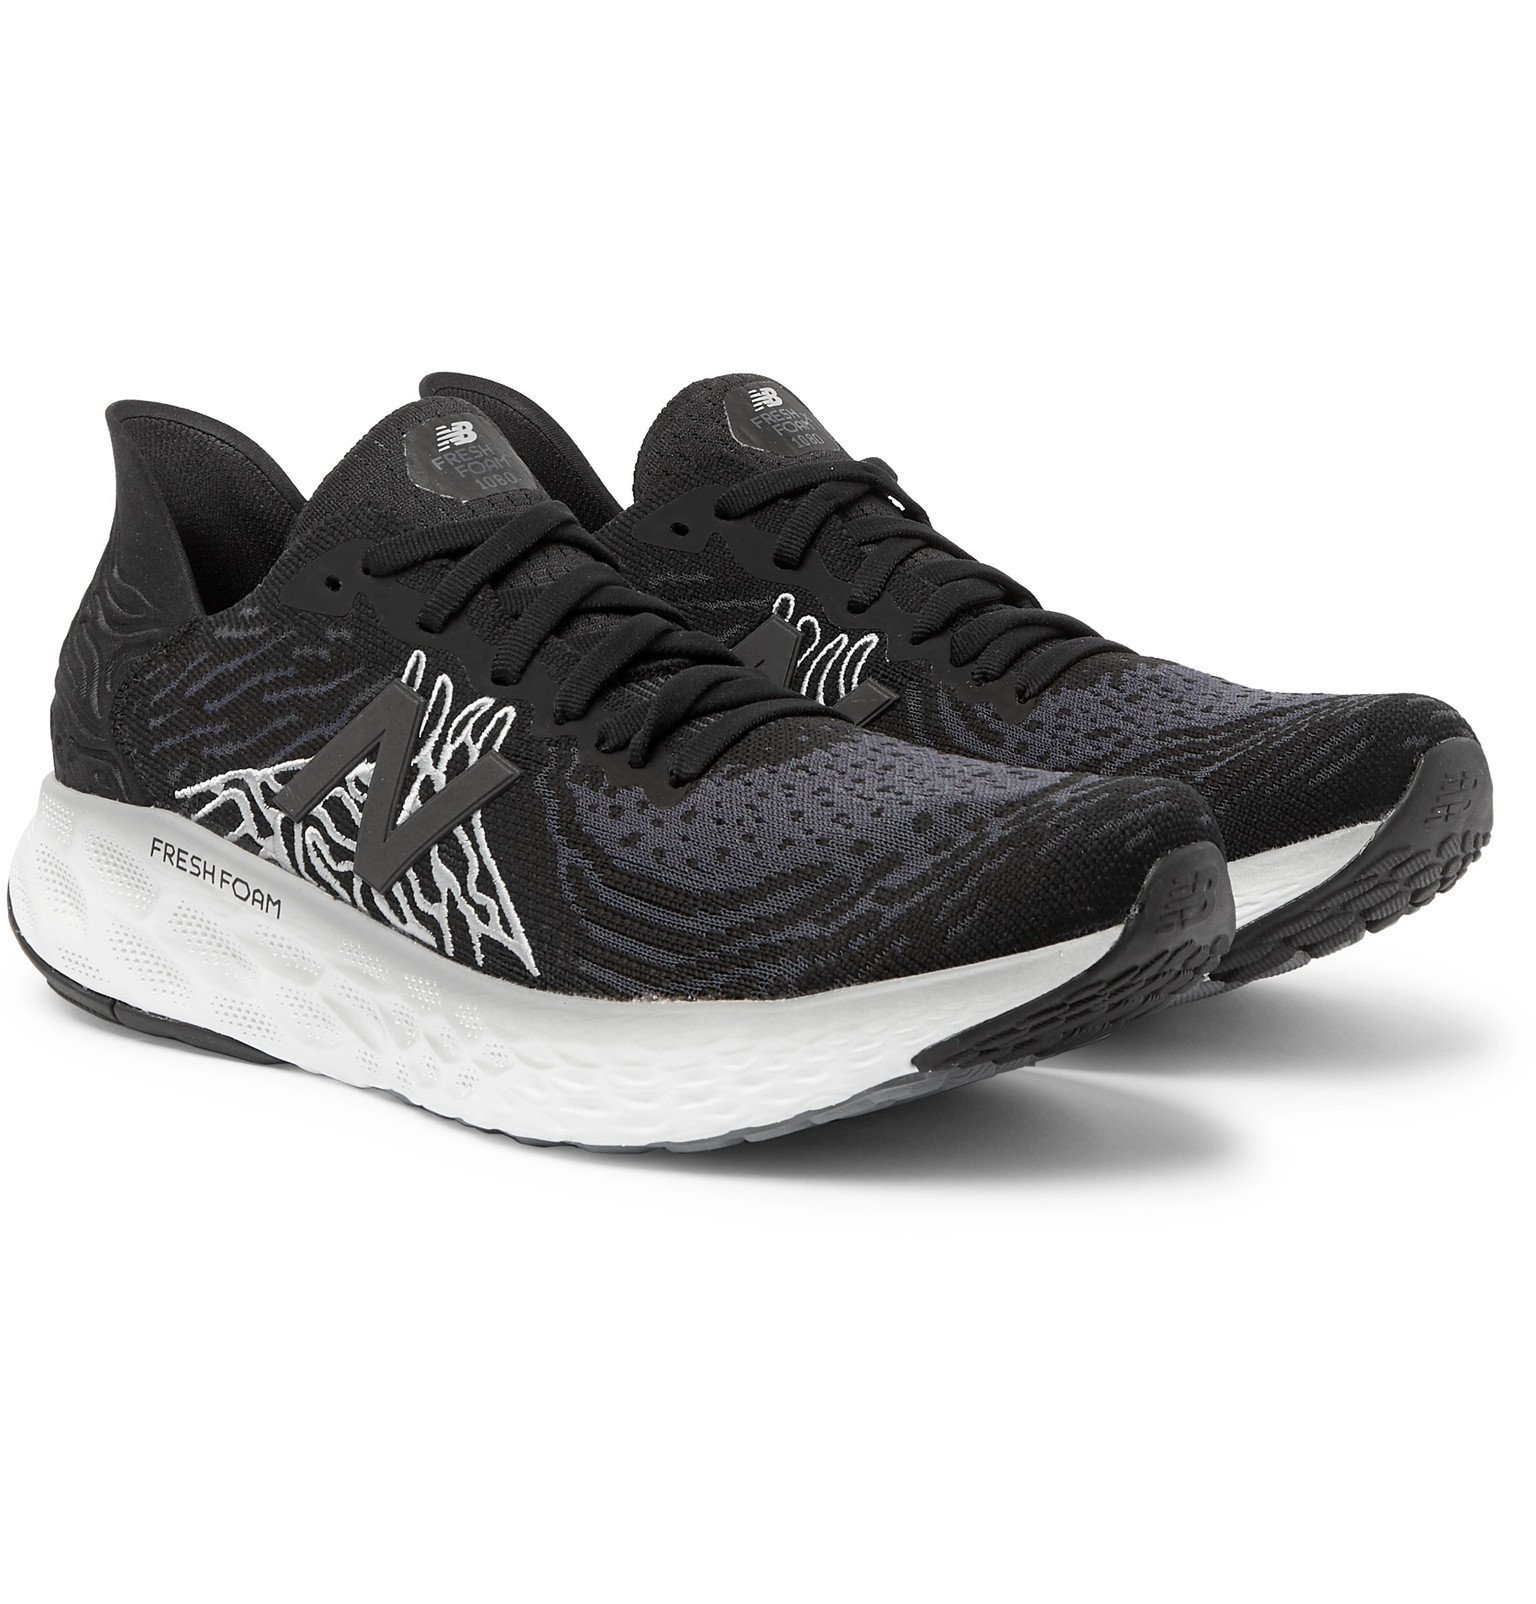 New Balance - Fresh Foam Hypoknit Running Sneakers - Black